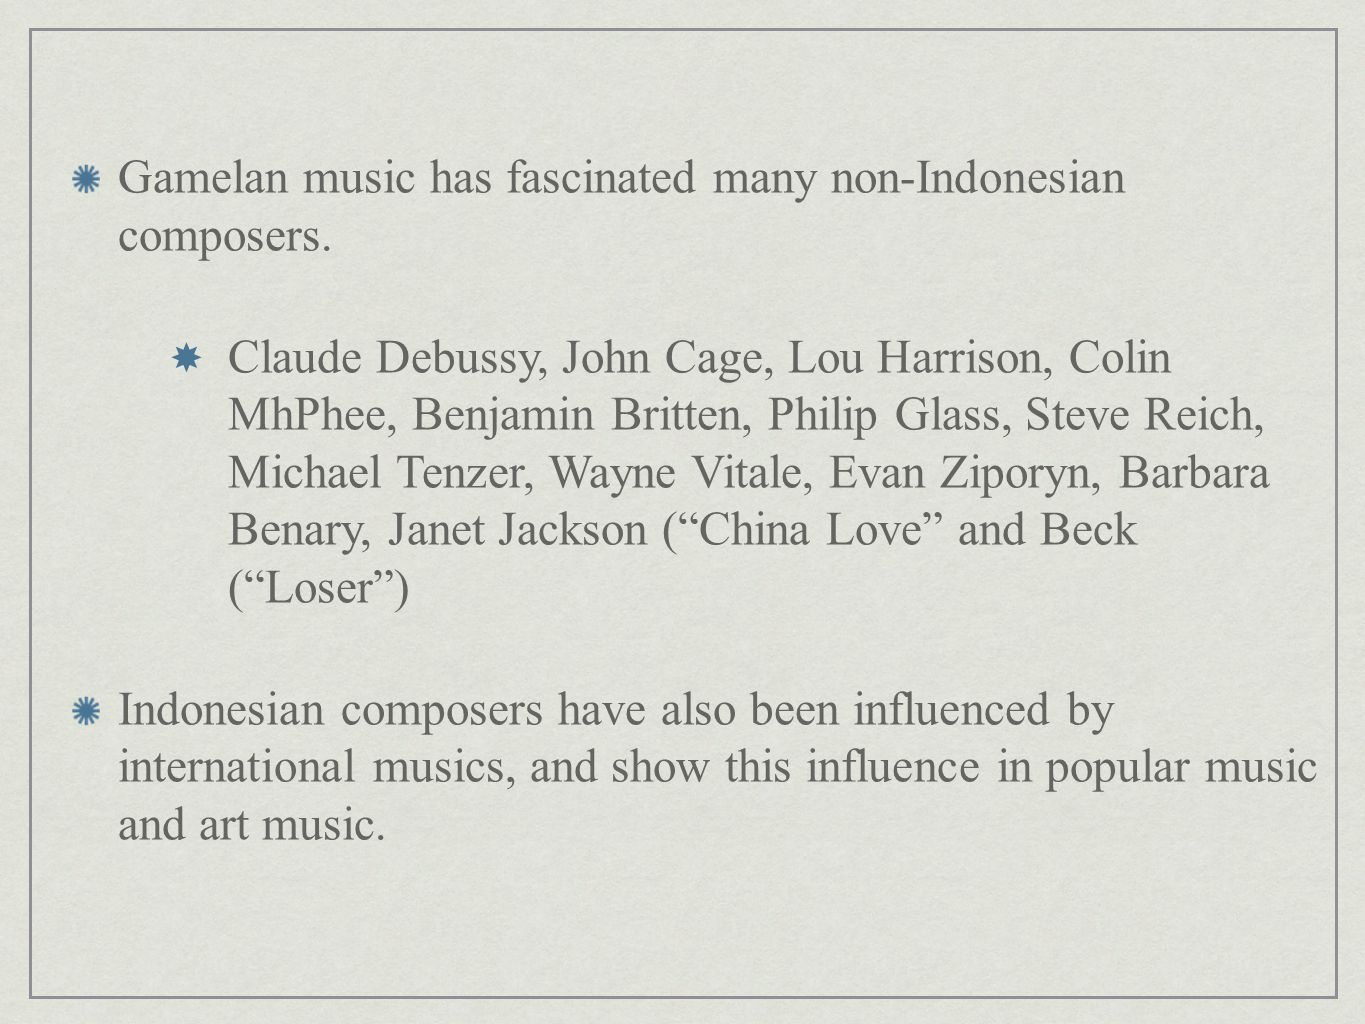 Gamelan music has fascinated many non-Indonesian composers.